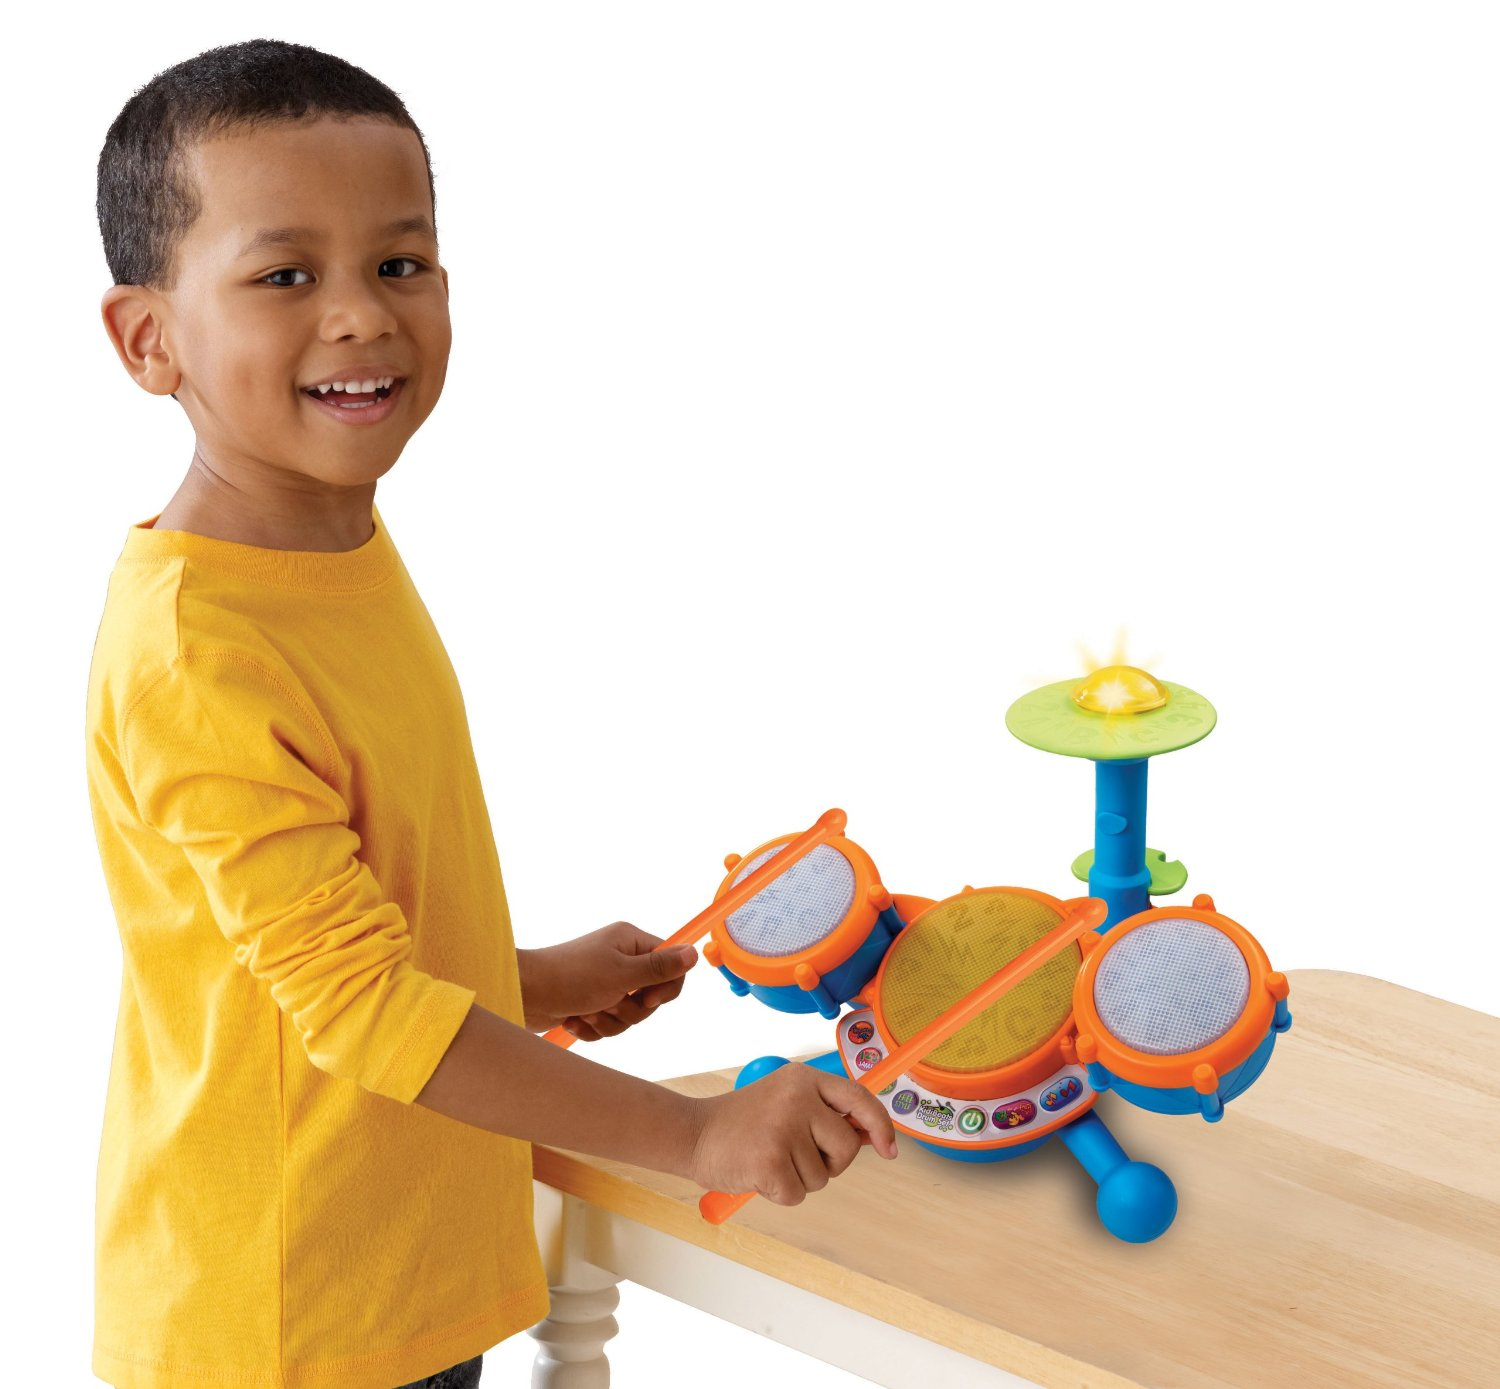 e0981266b VTech KidiBeats Kids Drum Set | Buy Tech Zone